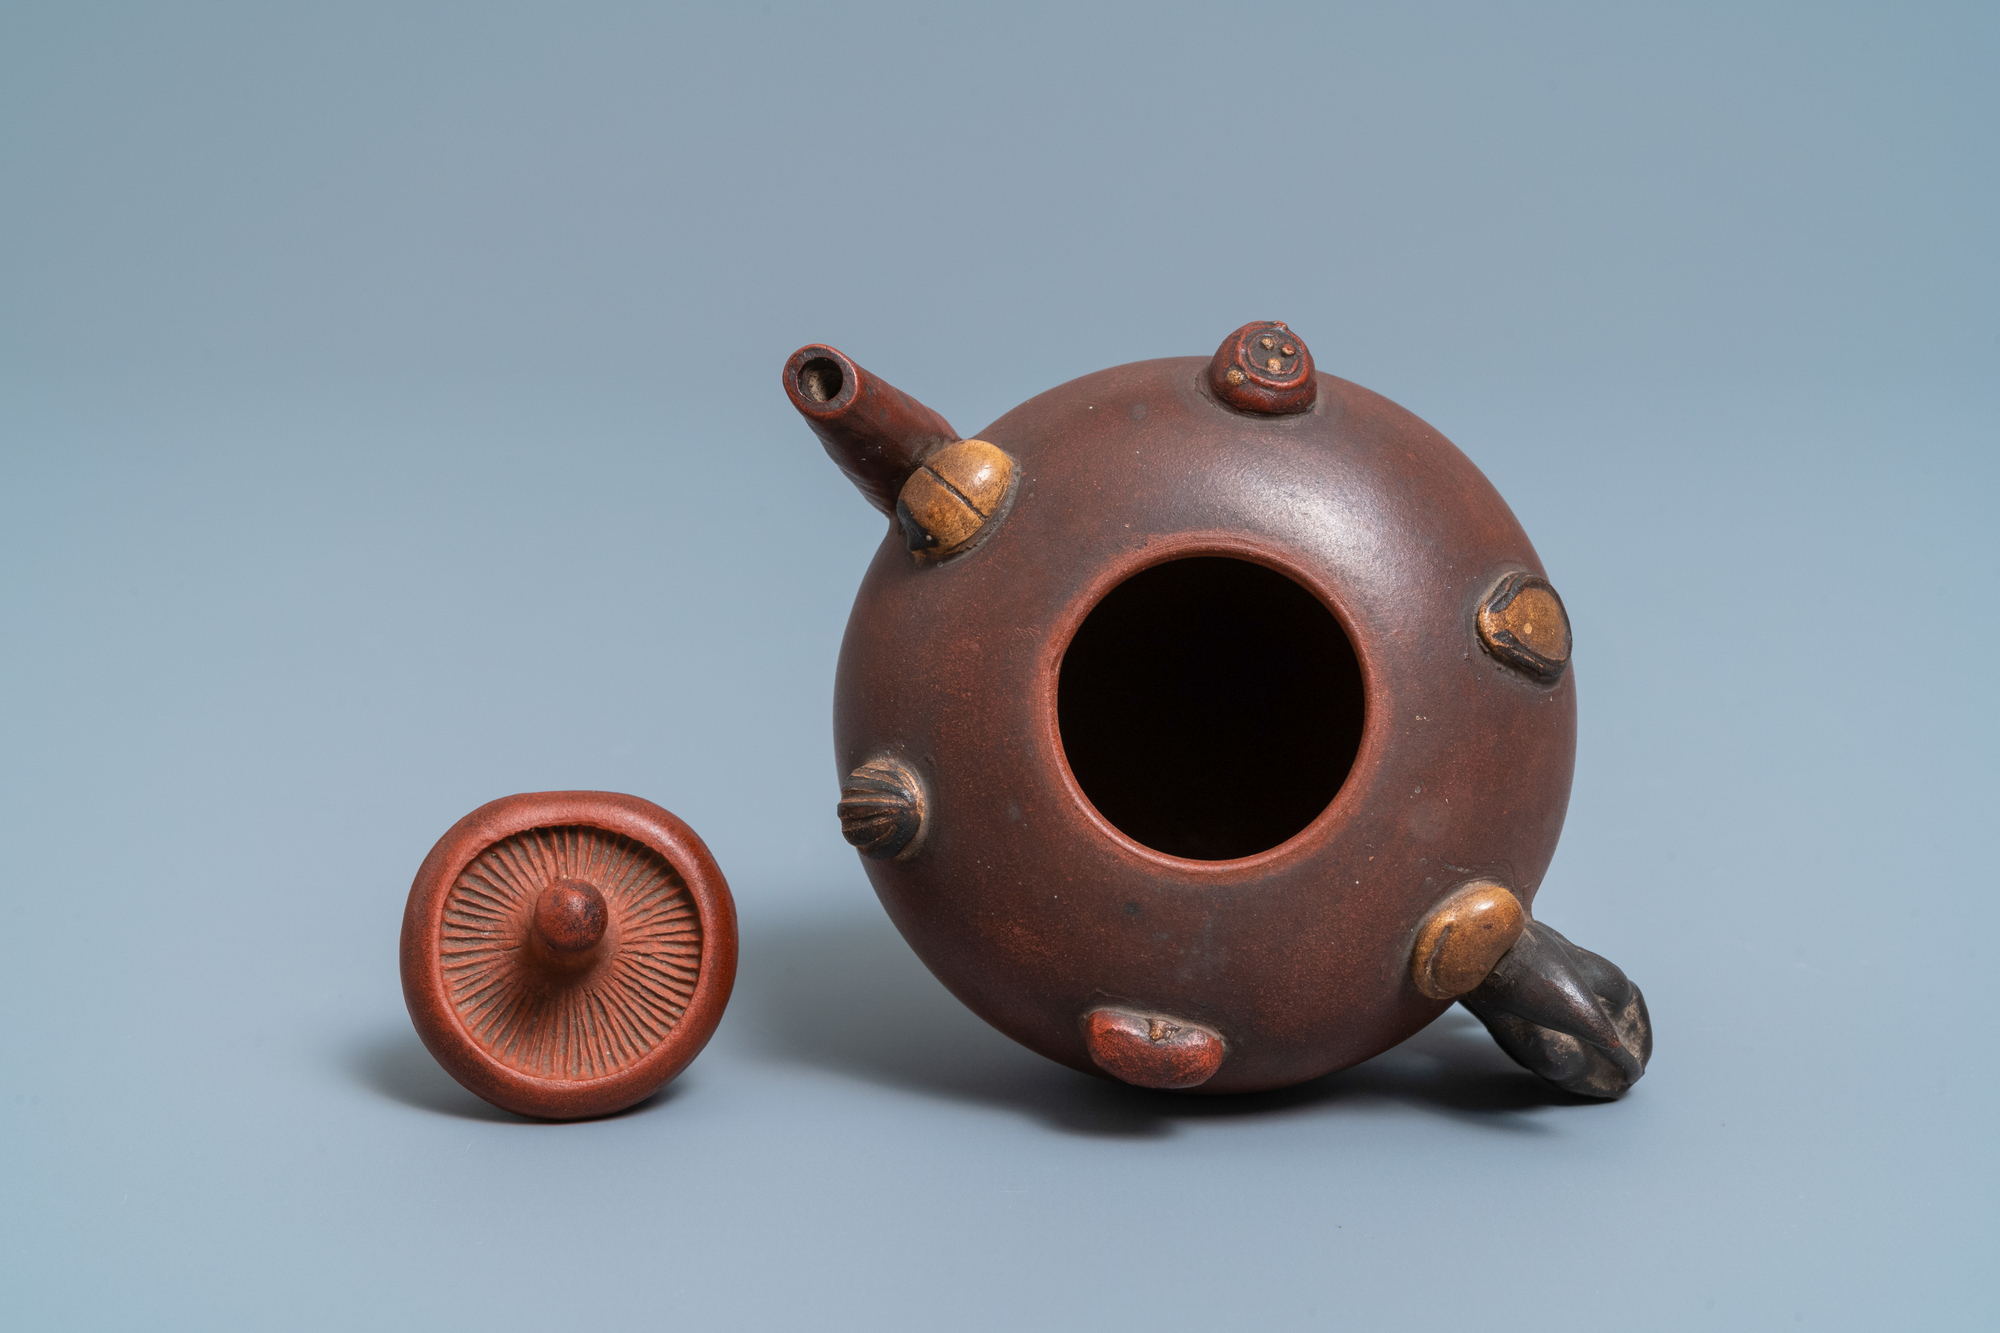 A Chinese Yixing stoneware teapot and cover with applied nuts, 19/20th C. - Image 6 of 7